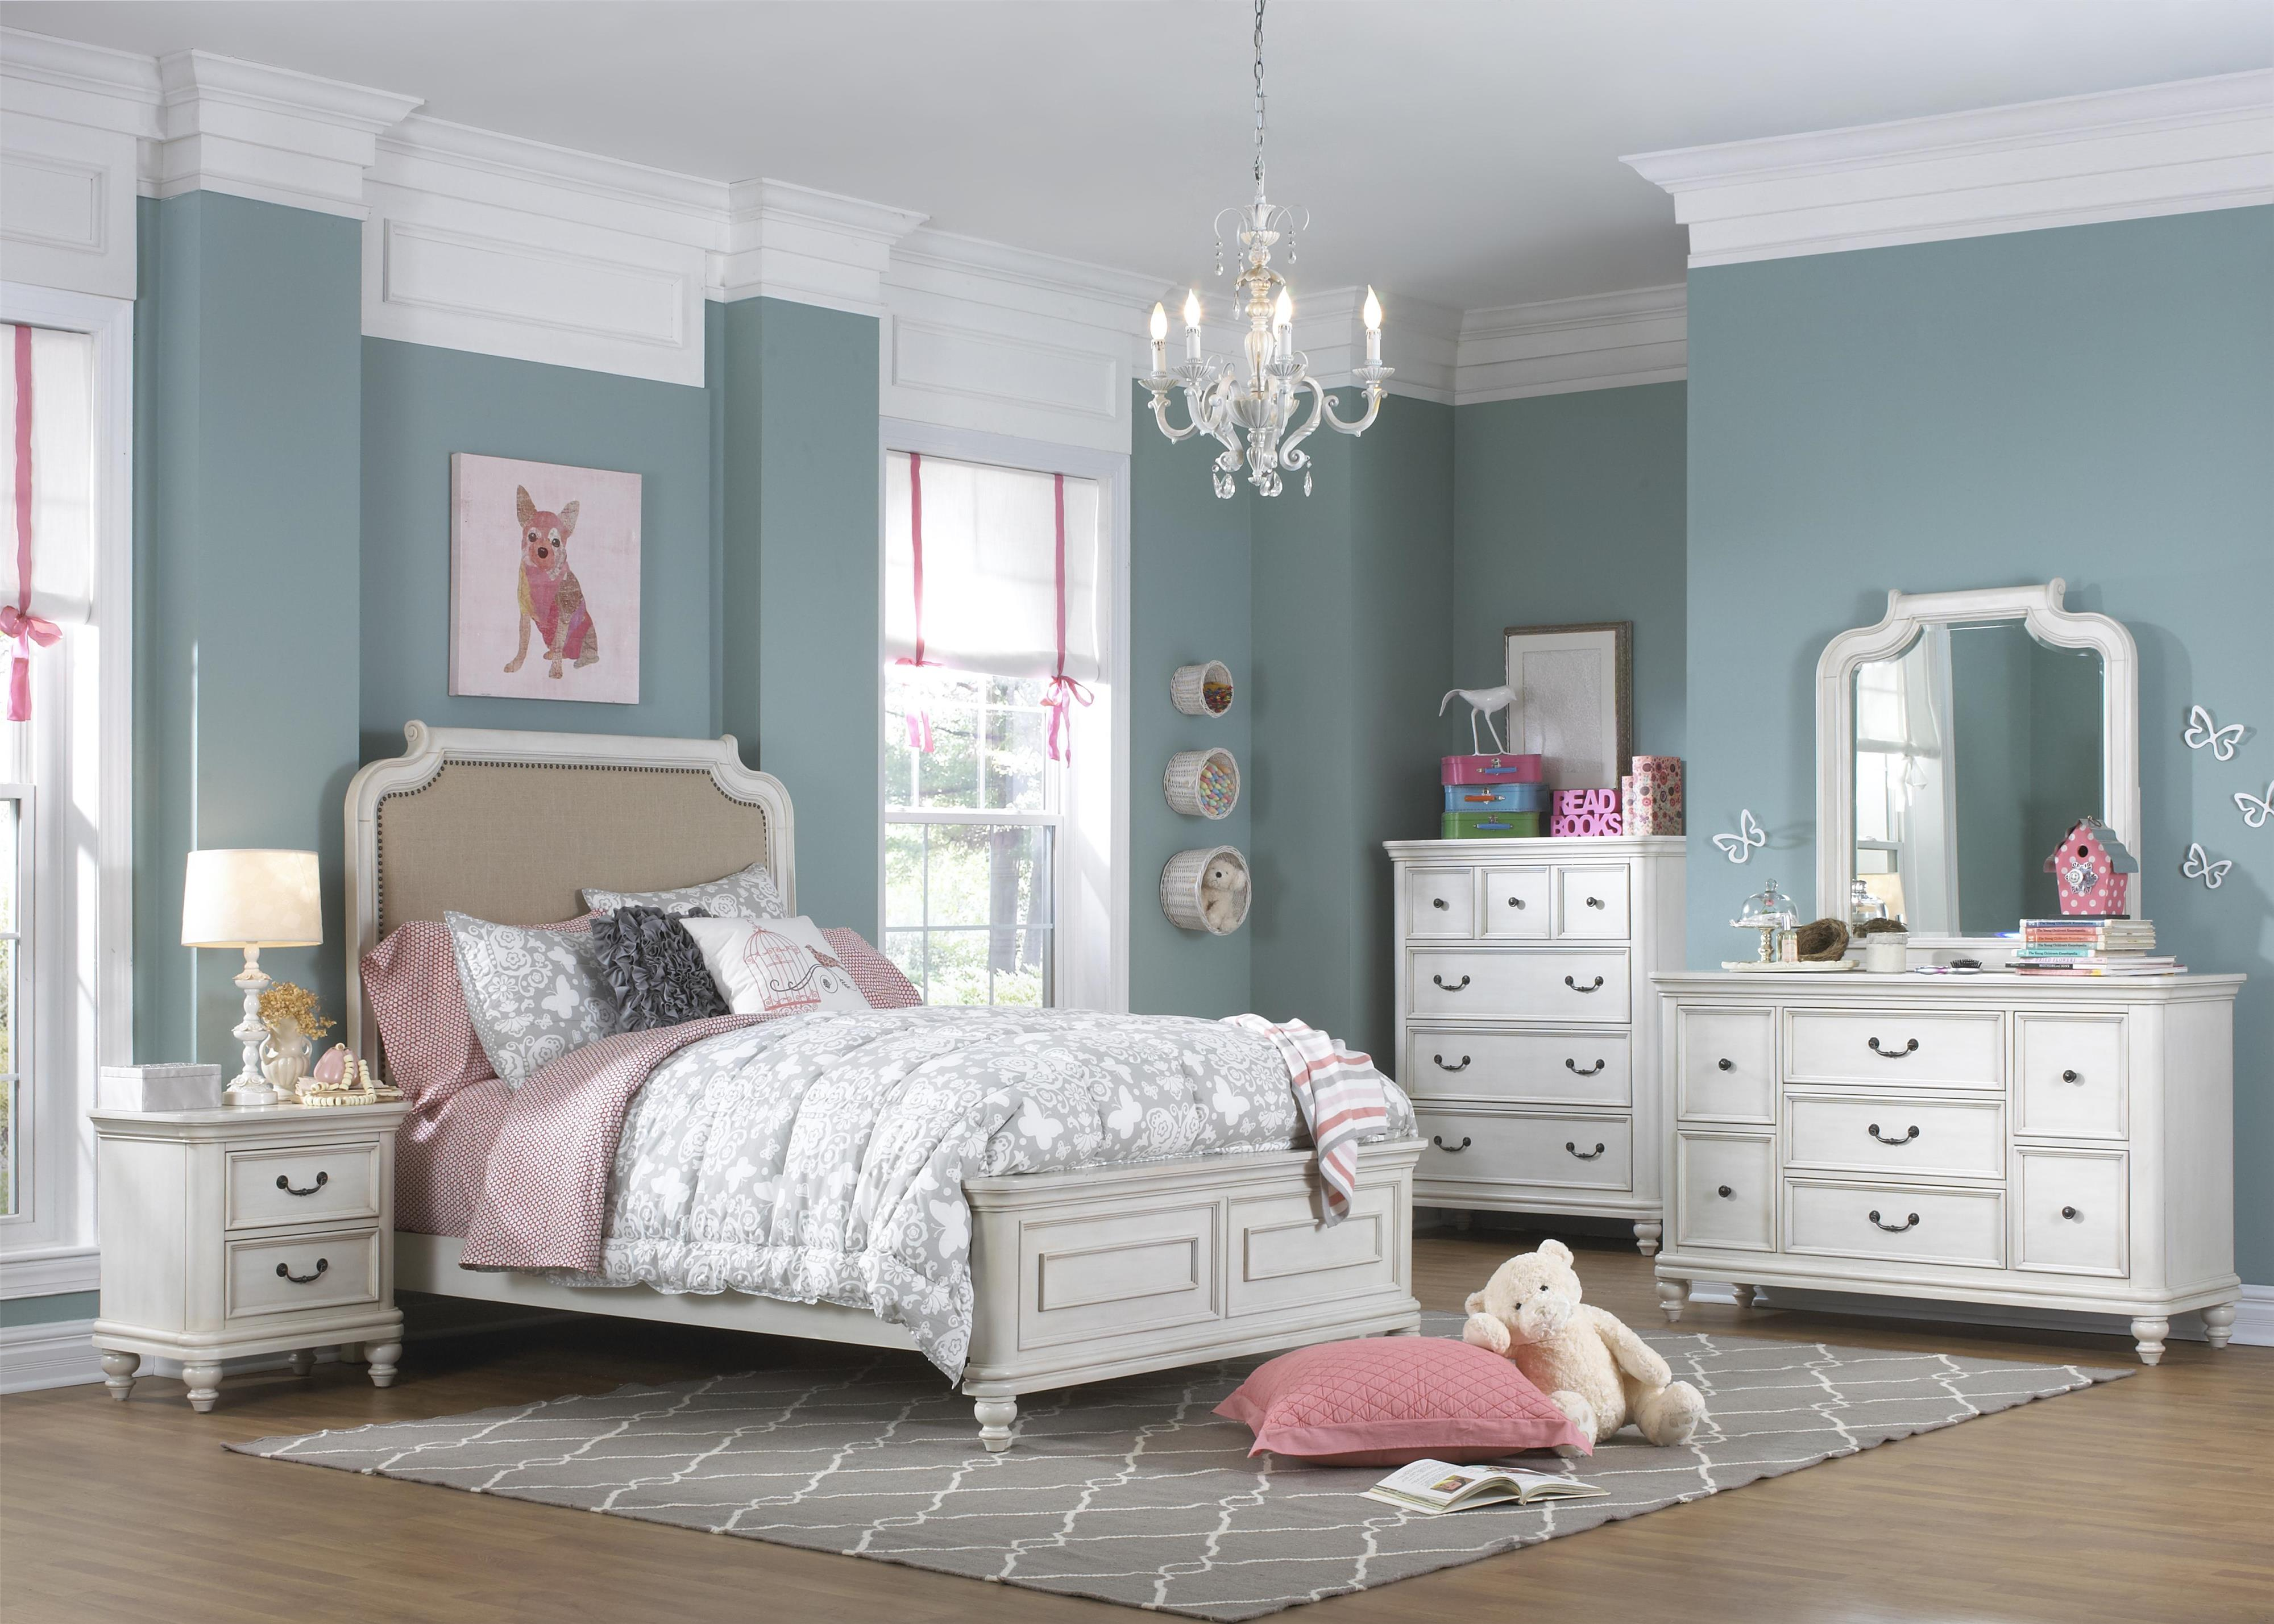 Kidz Gear Everly Full Bedroom Group - Item Number: 8890 F Bedroom Group 1